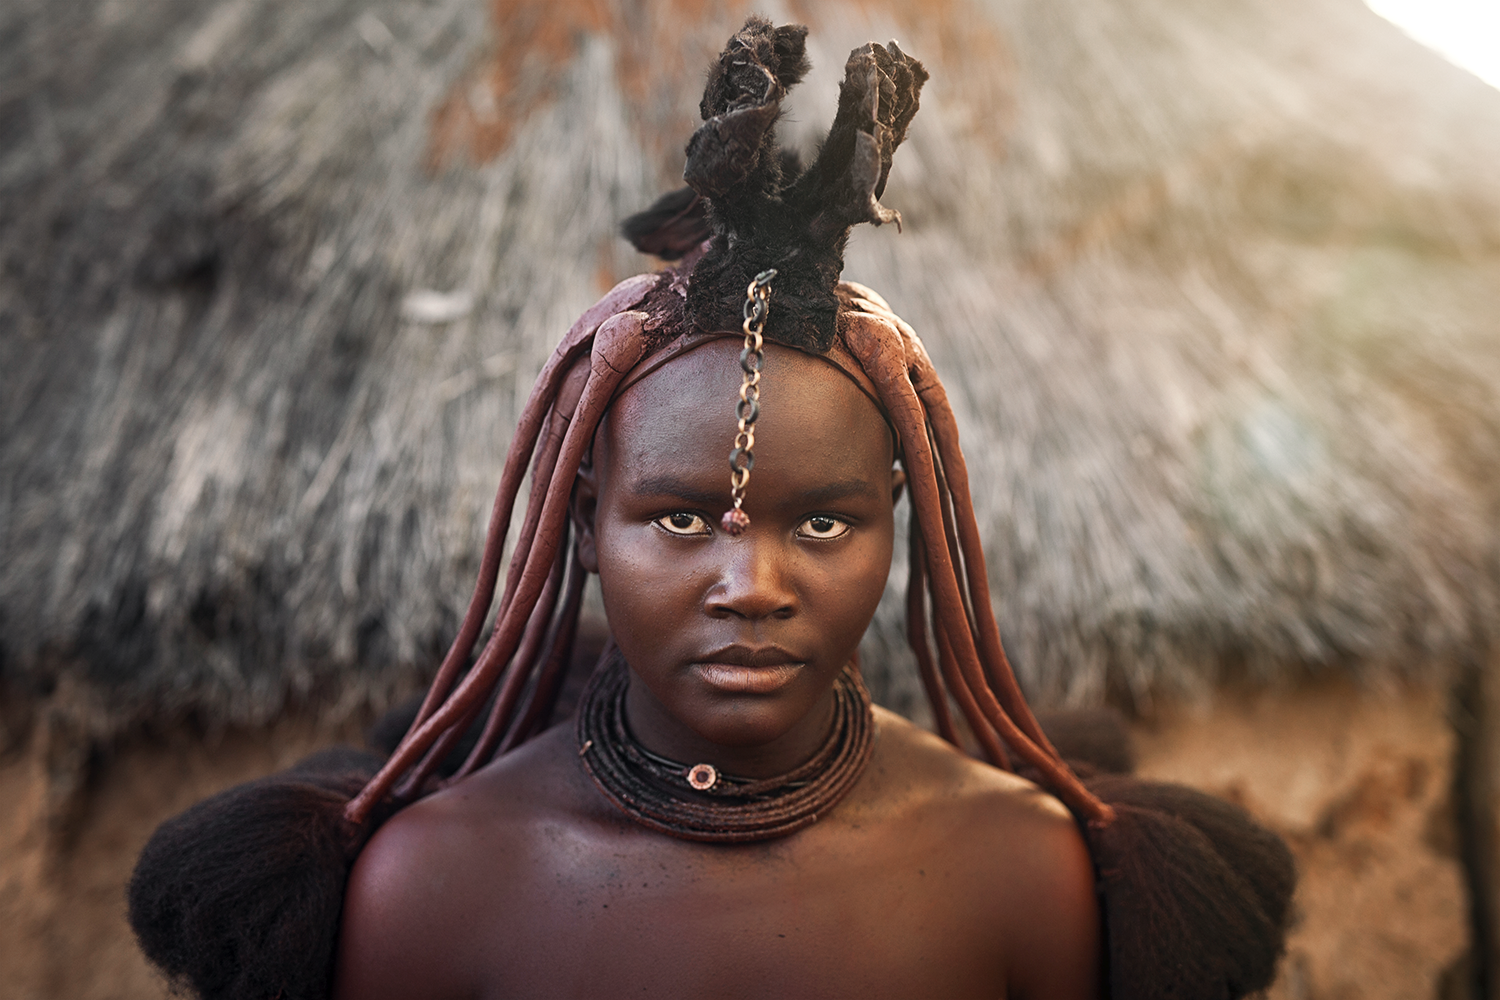 HIMBA natural light 10 Final.png